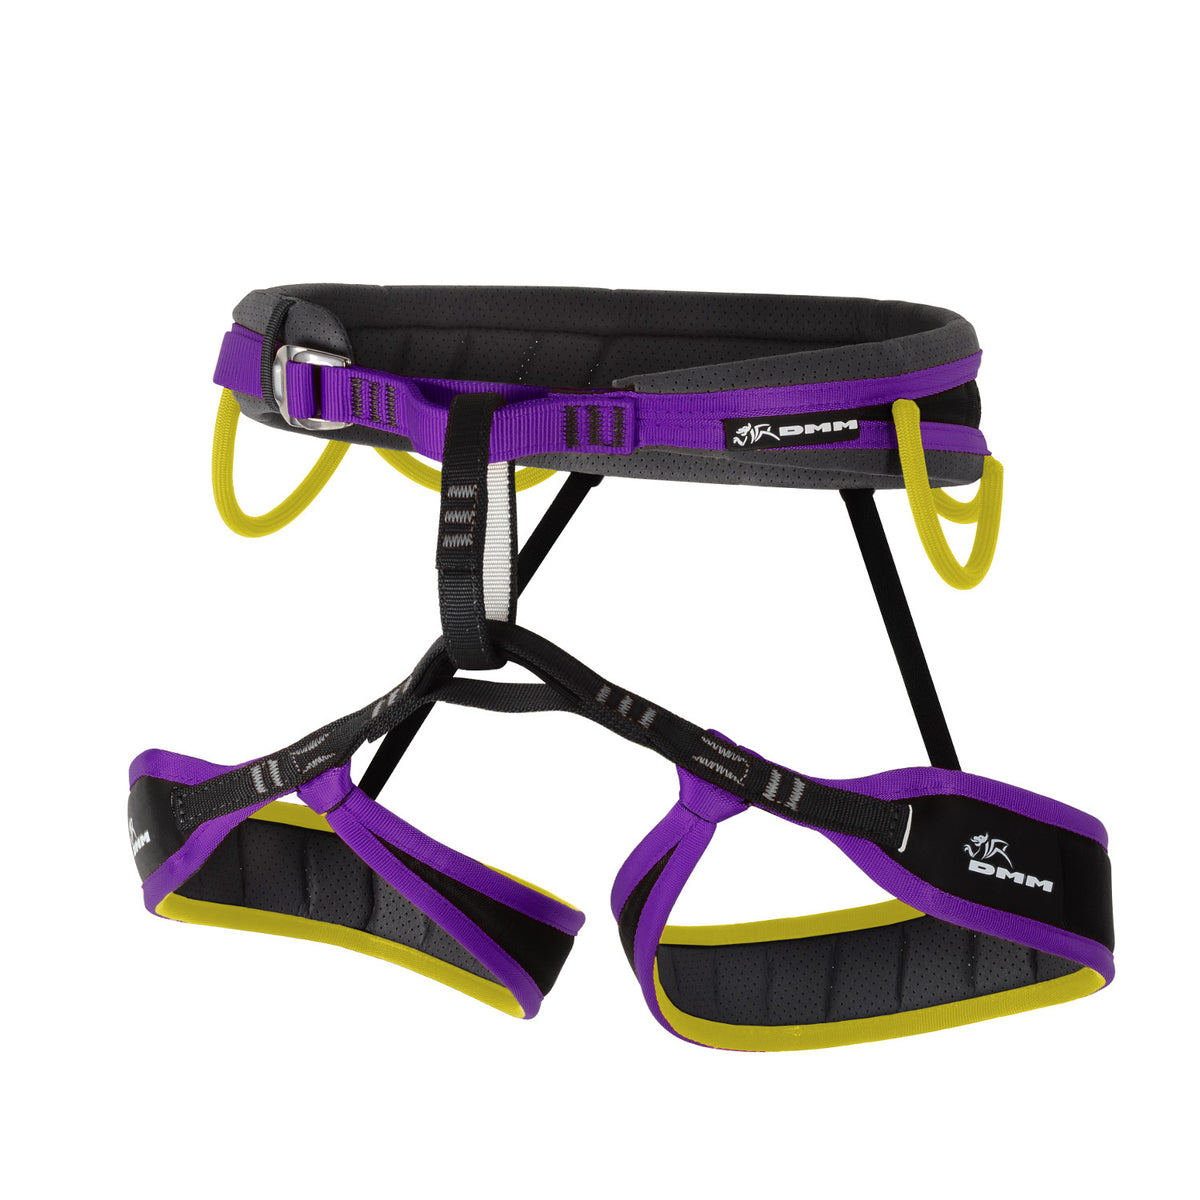 DMM Trance Harness in Purple & Yellow